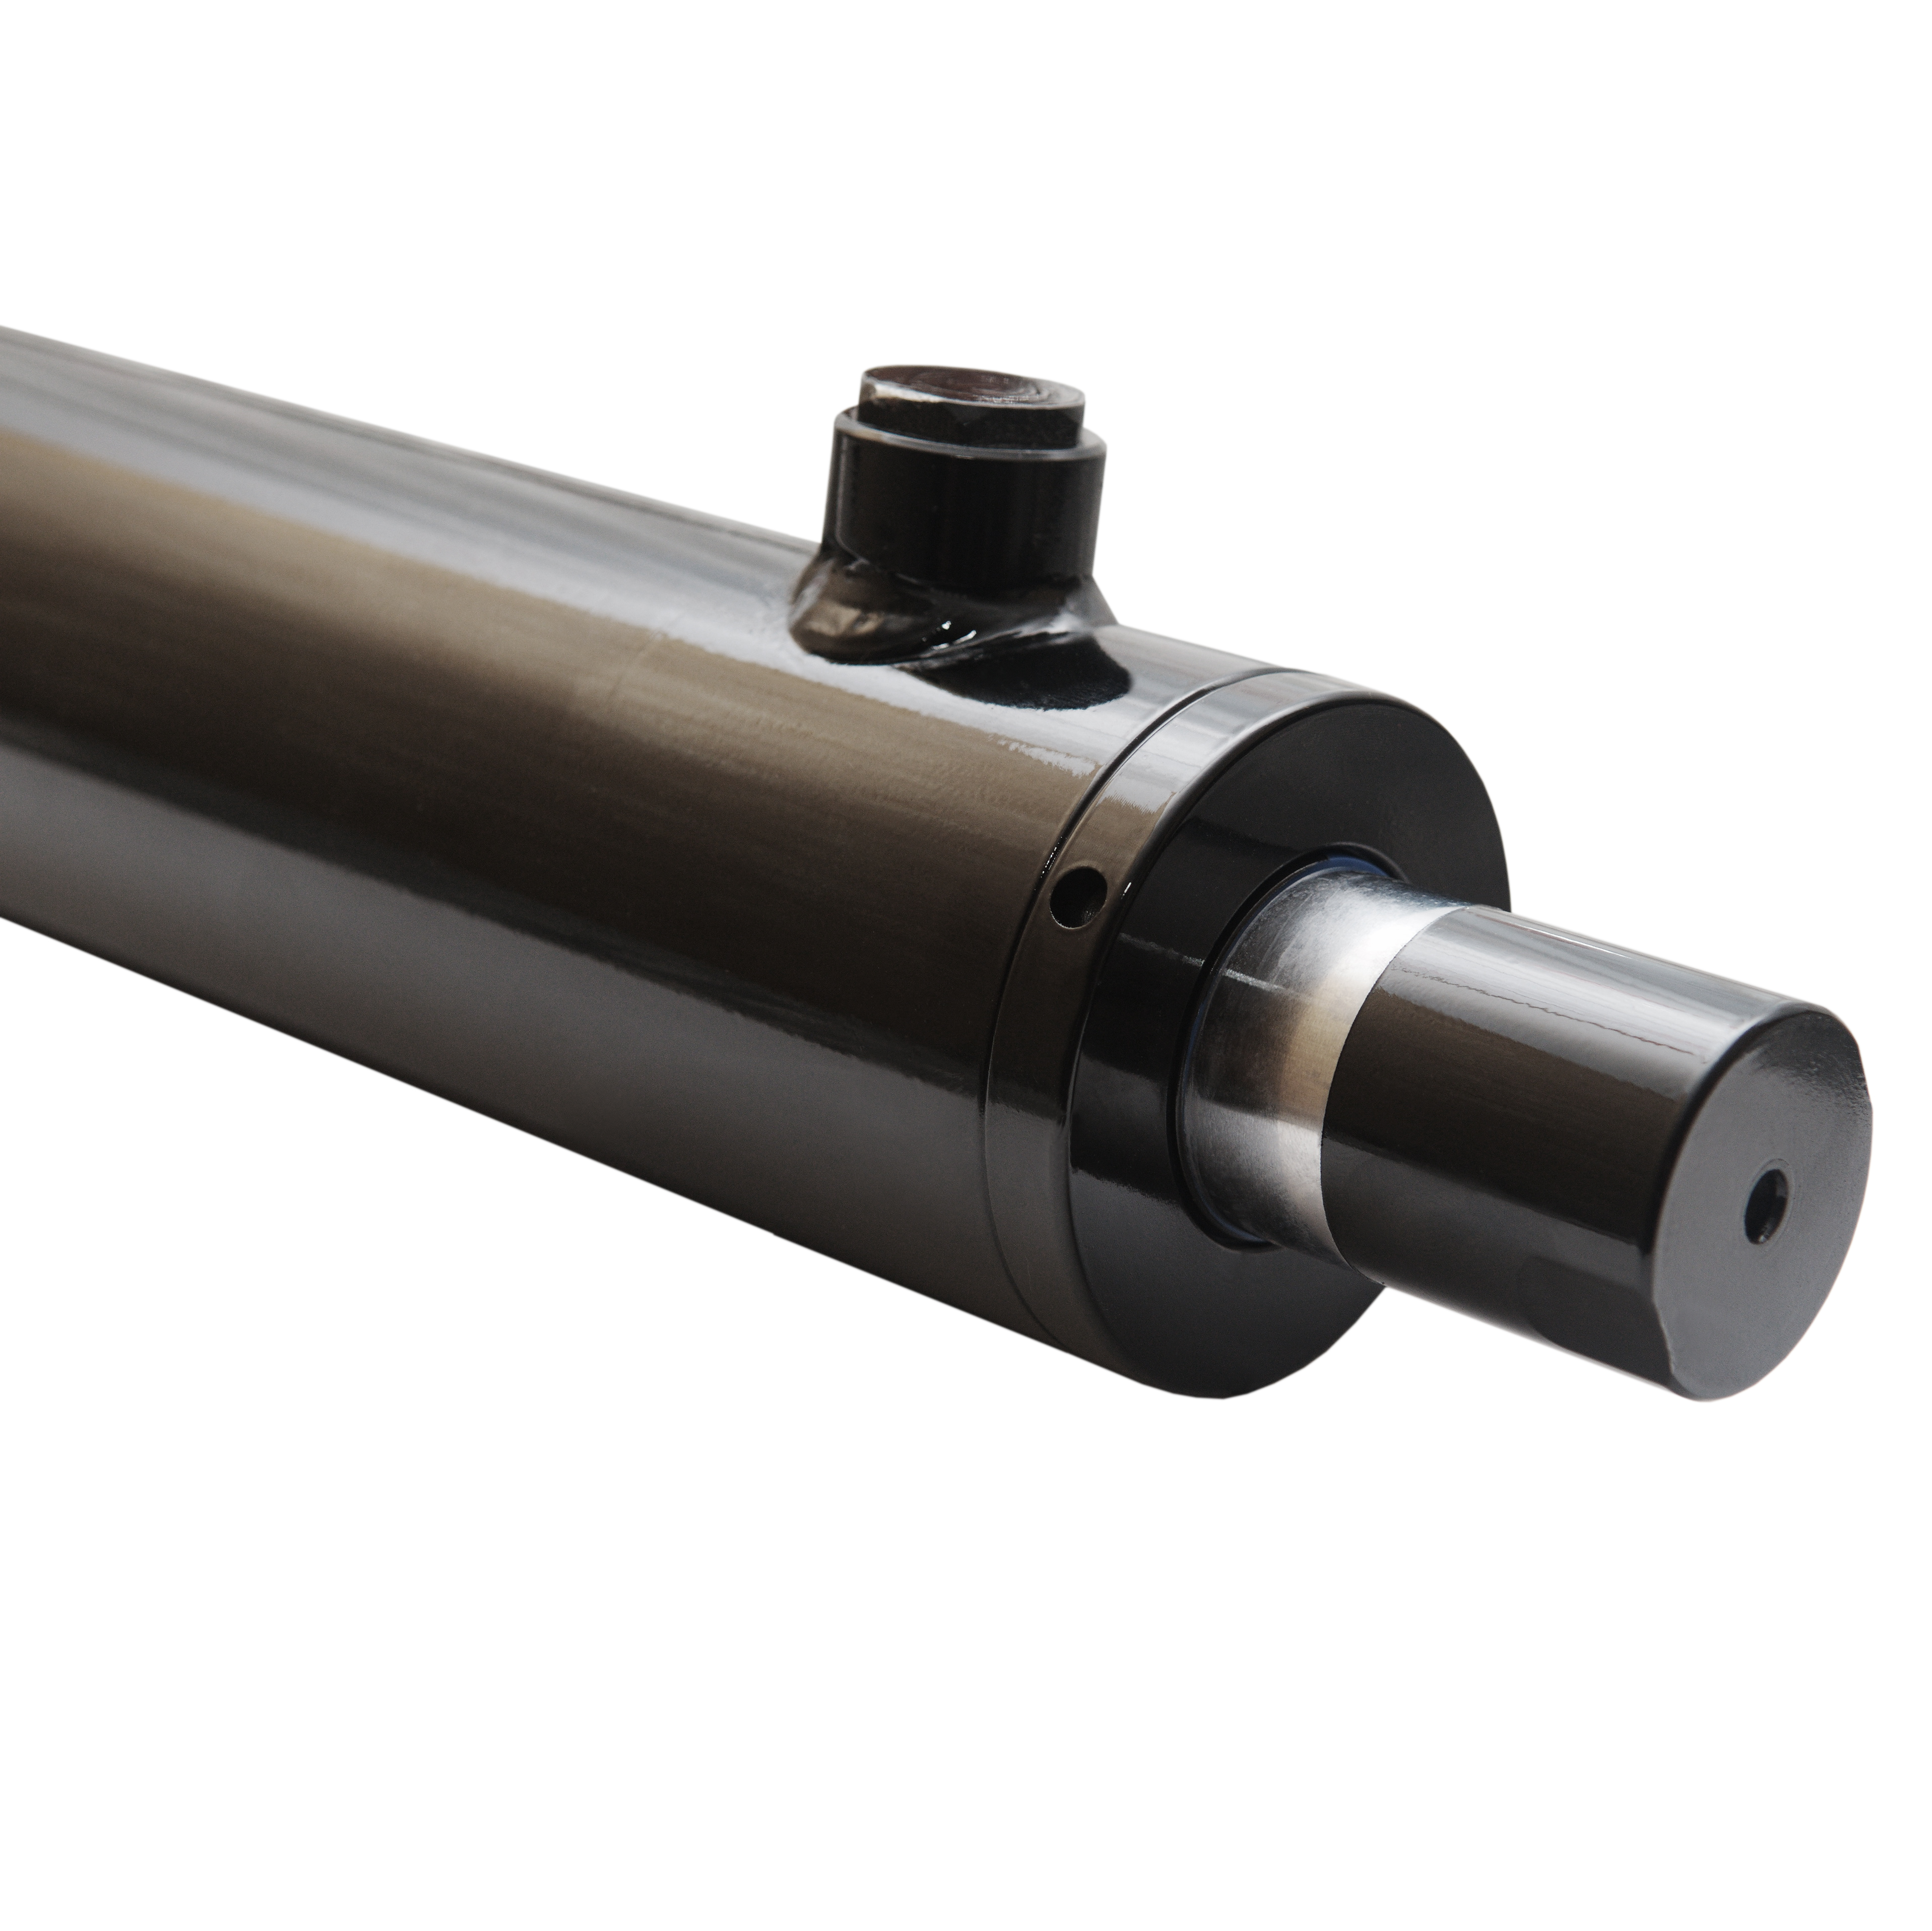 2.5 bore x 21 stroke hydraulic cylinder, welded universal double acting cylinder | Magister Hydraulics